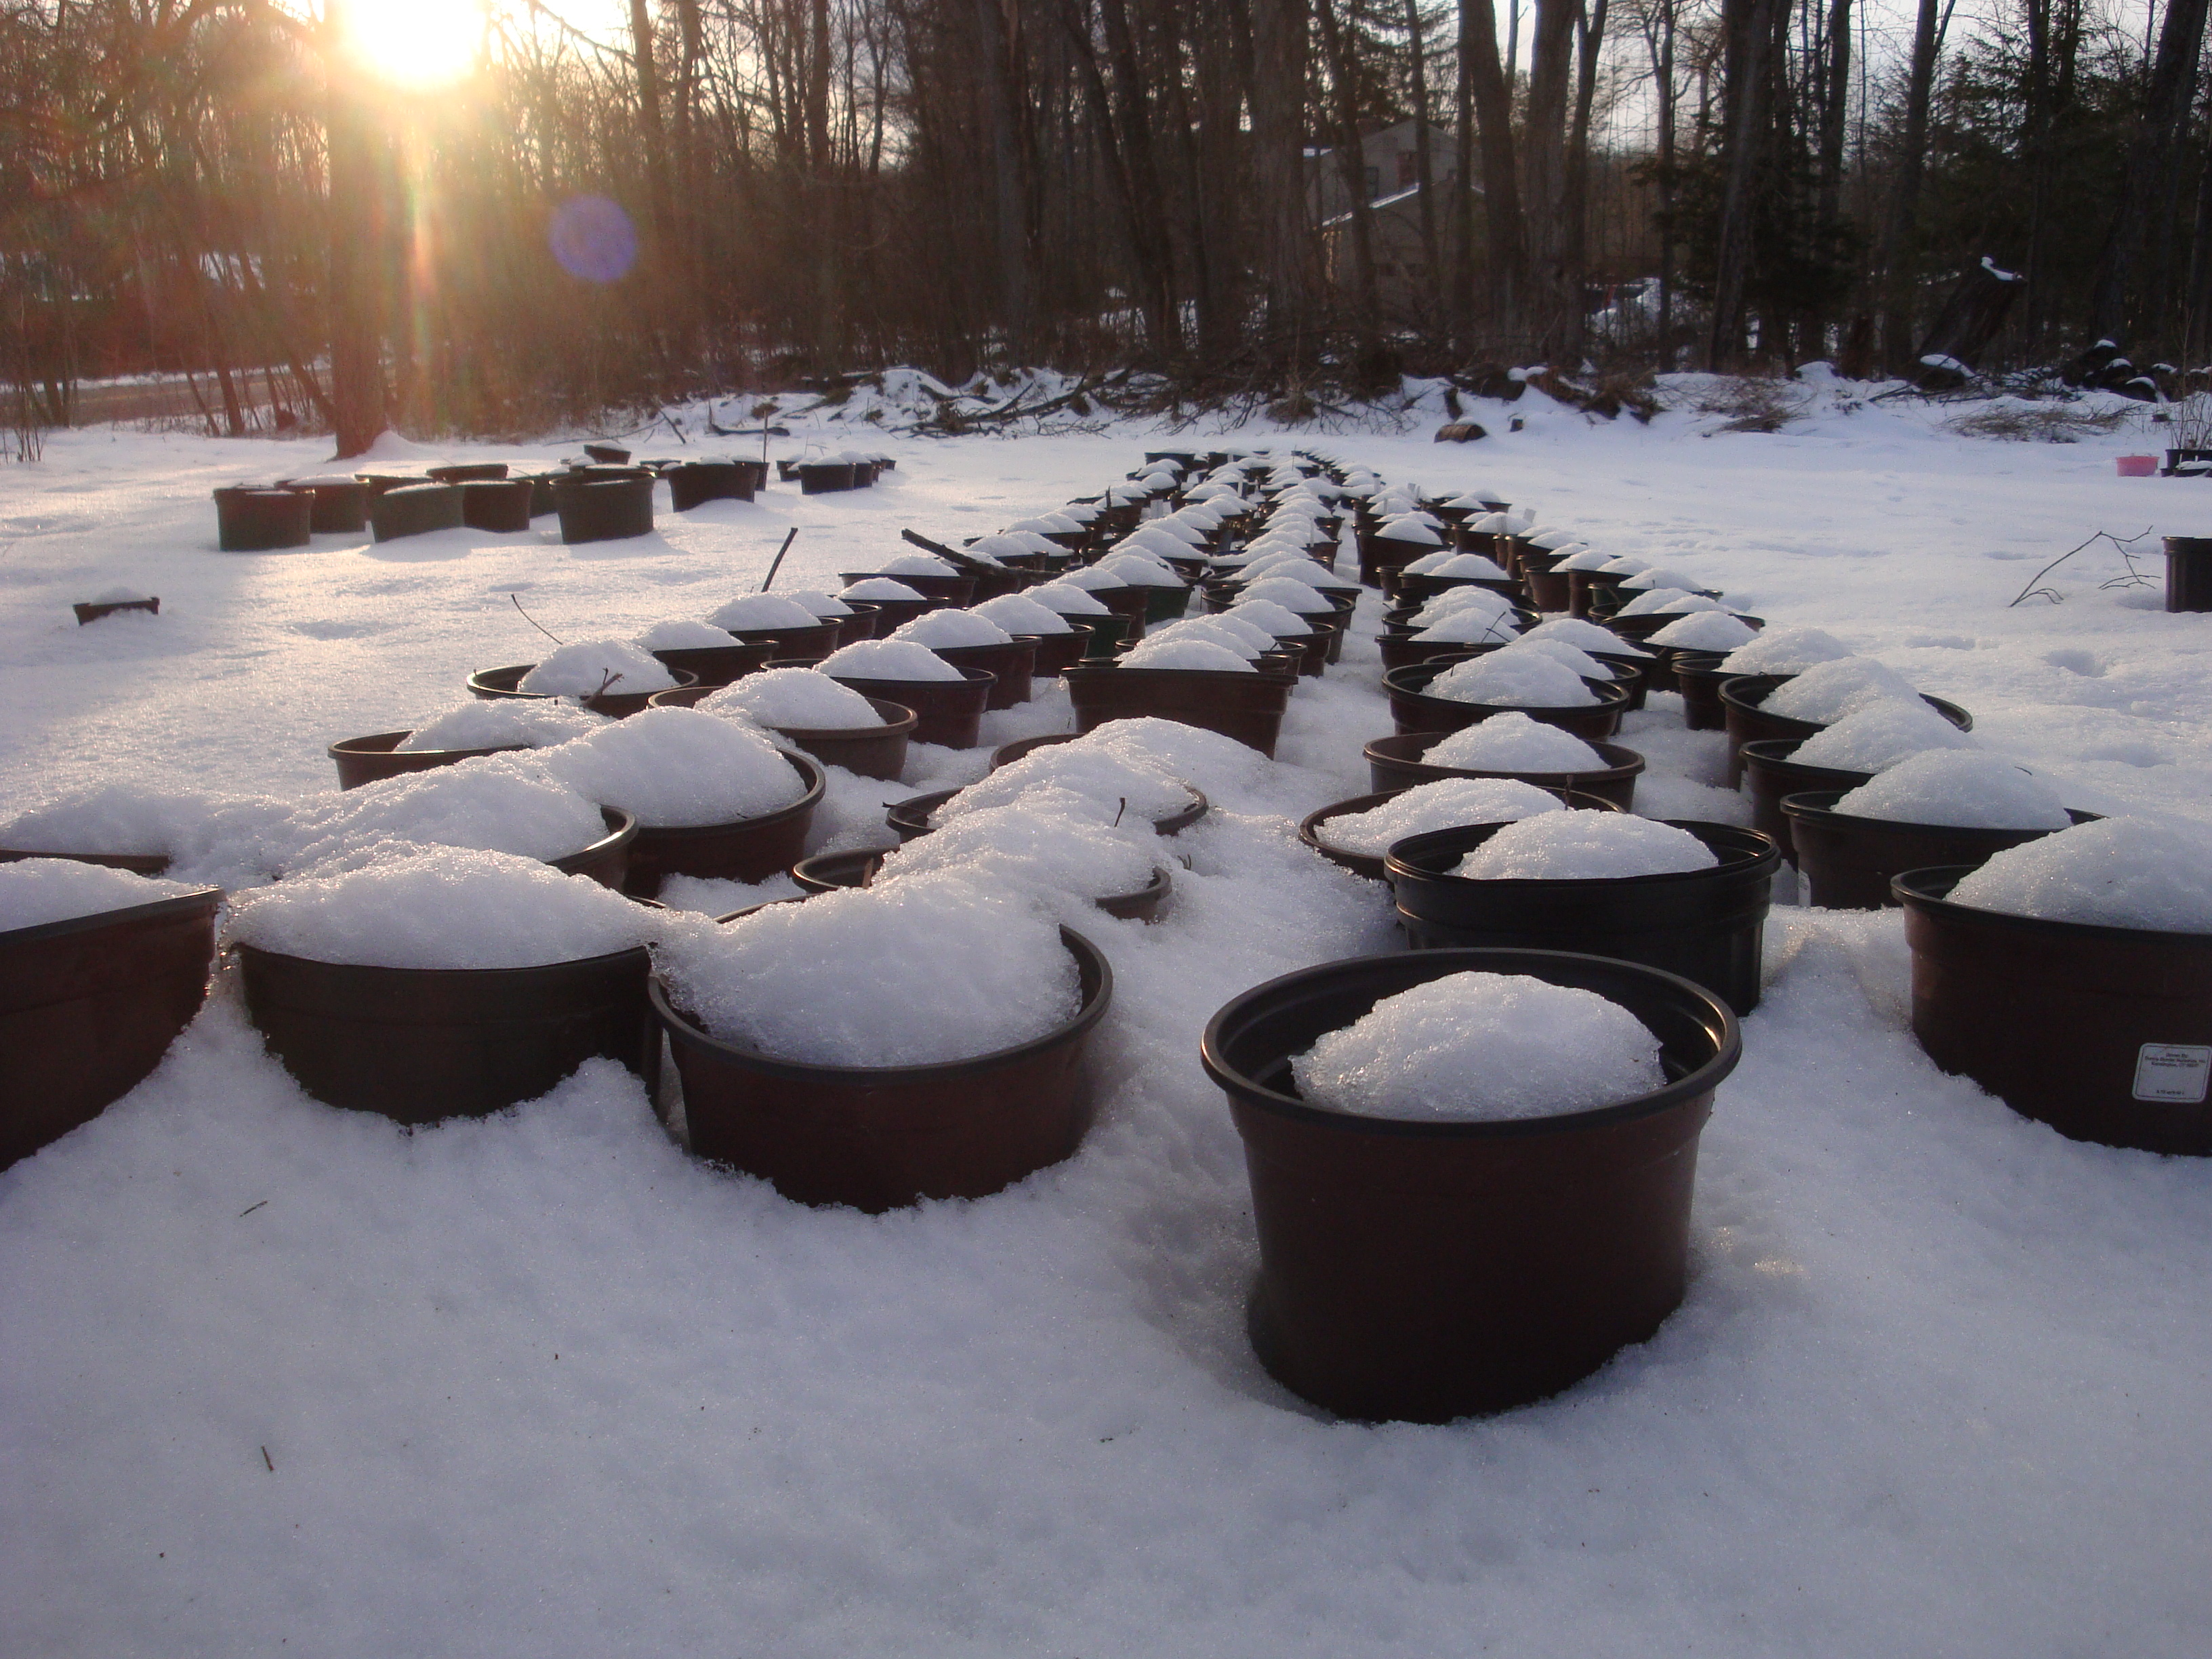 The sun sets on an early spring day in the nursery, and it appears that planting season will be delayed a bit...